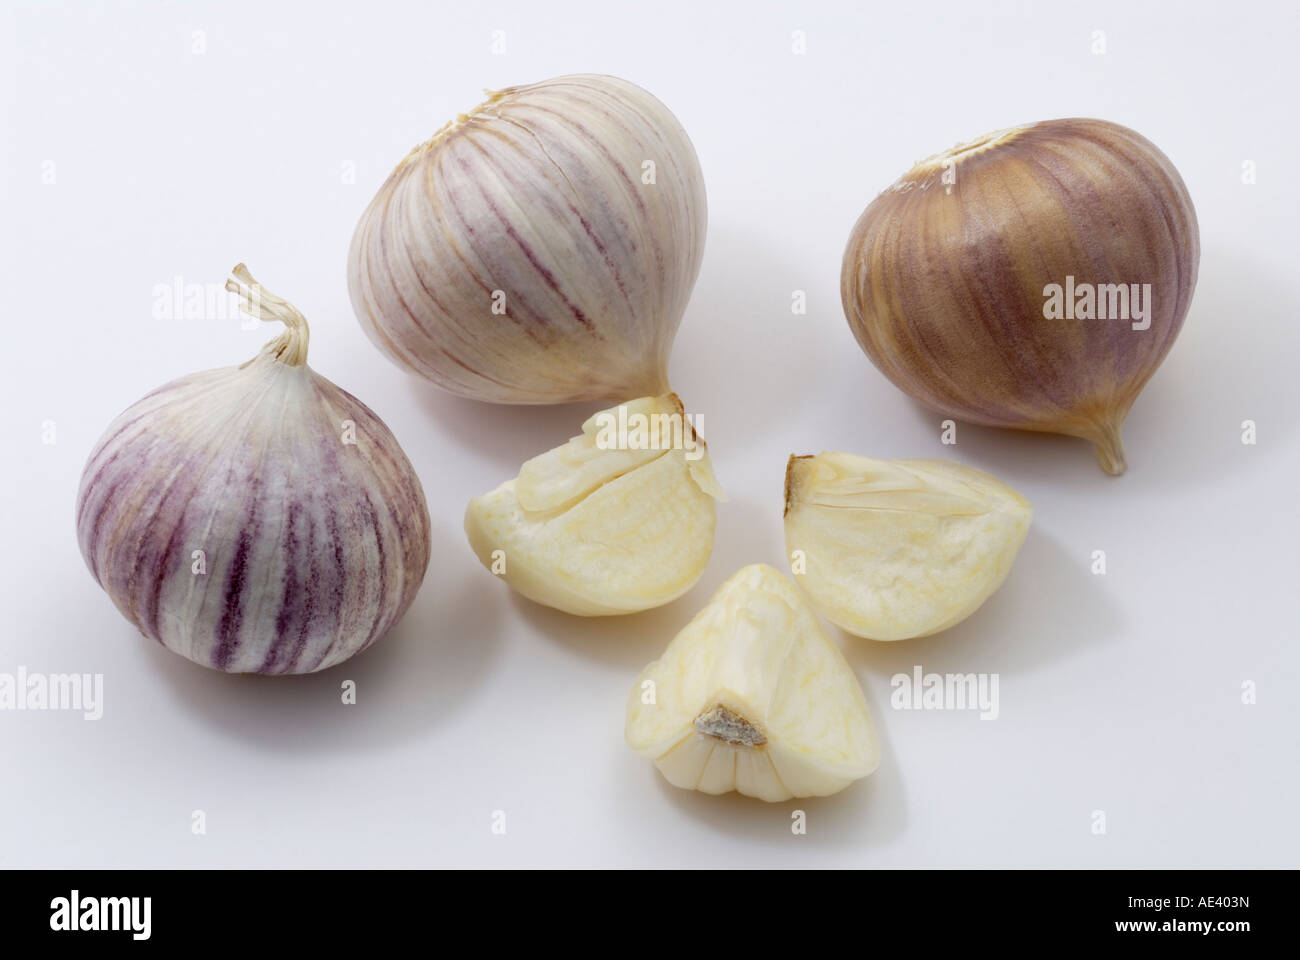 Elephant Garlic, Russian Garlic (Allium ampeloprasum), bulbs, studio picture - Stock Image